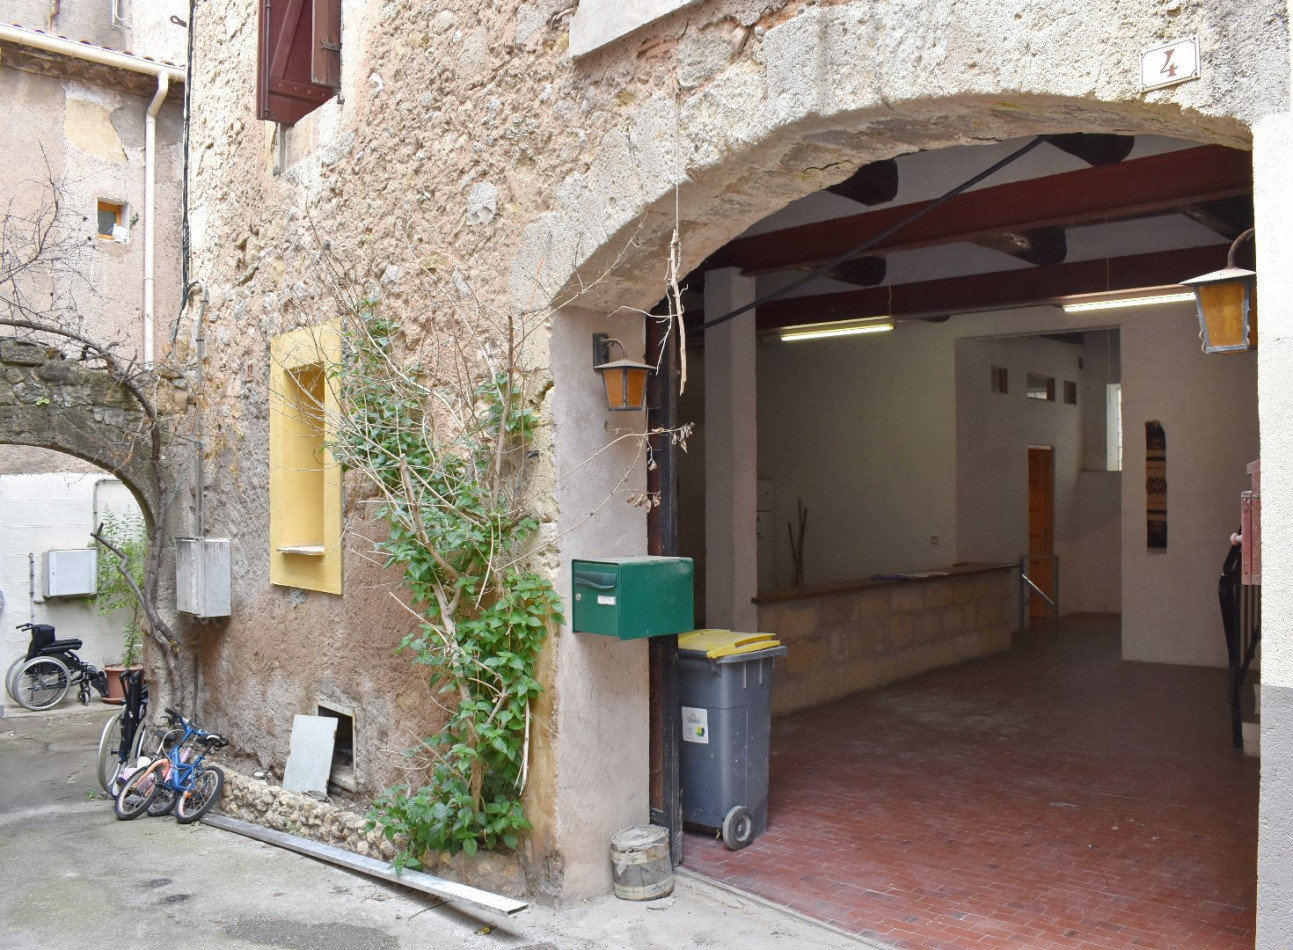 Apartment 4 km from Pezenas with potential